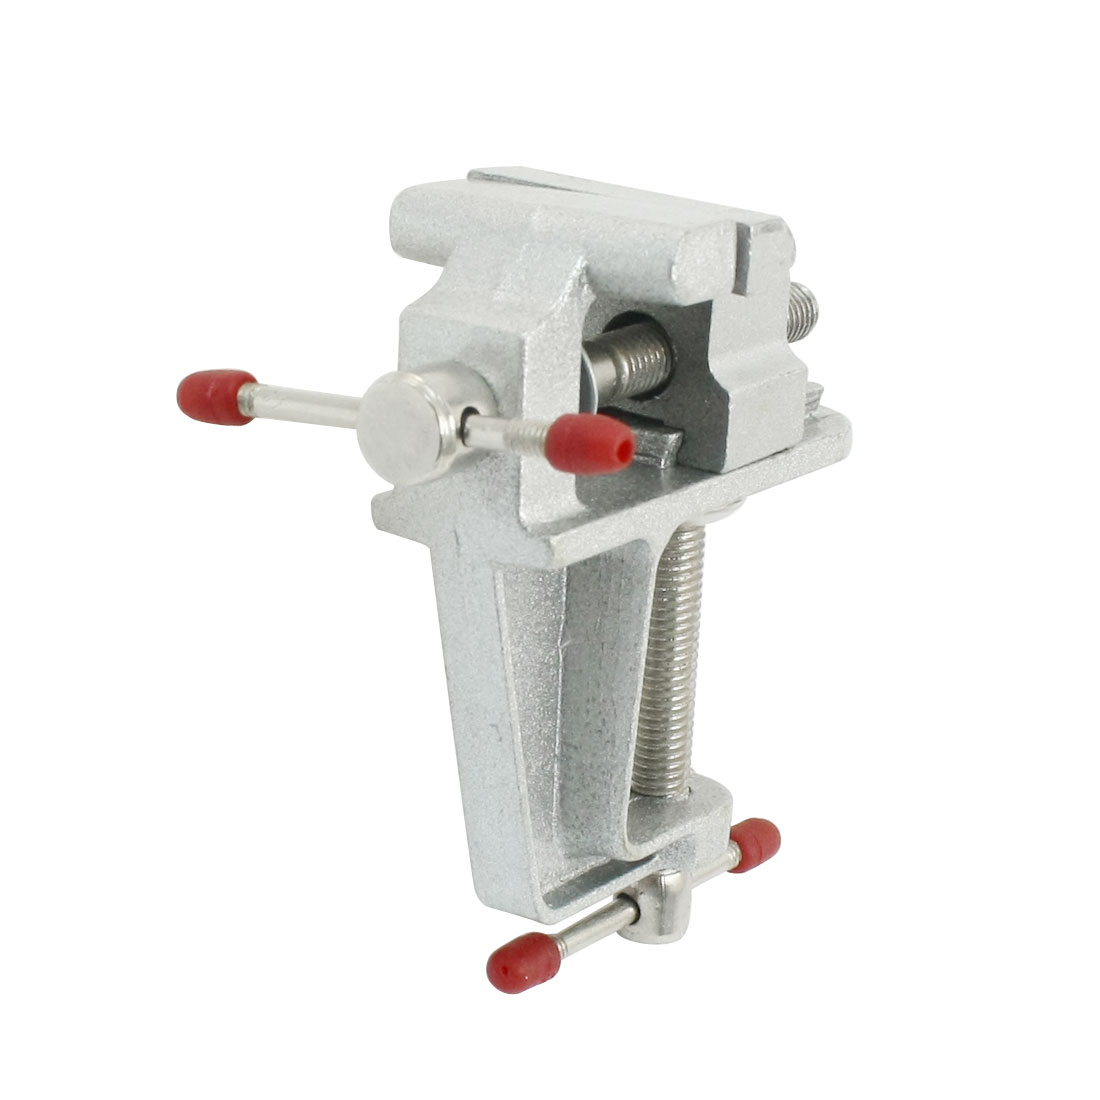 35mm Mini Table Vice Aluminium Alloy Screw Bench Vise for DIY Jewelries